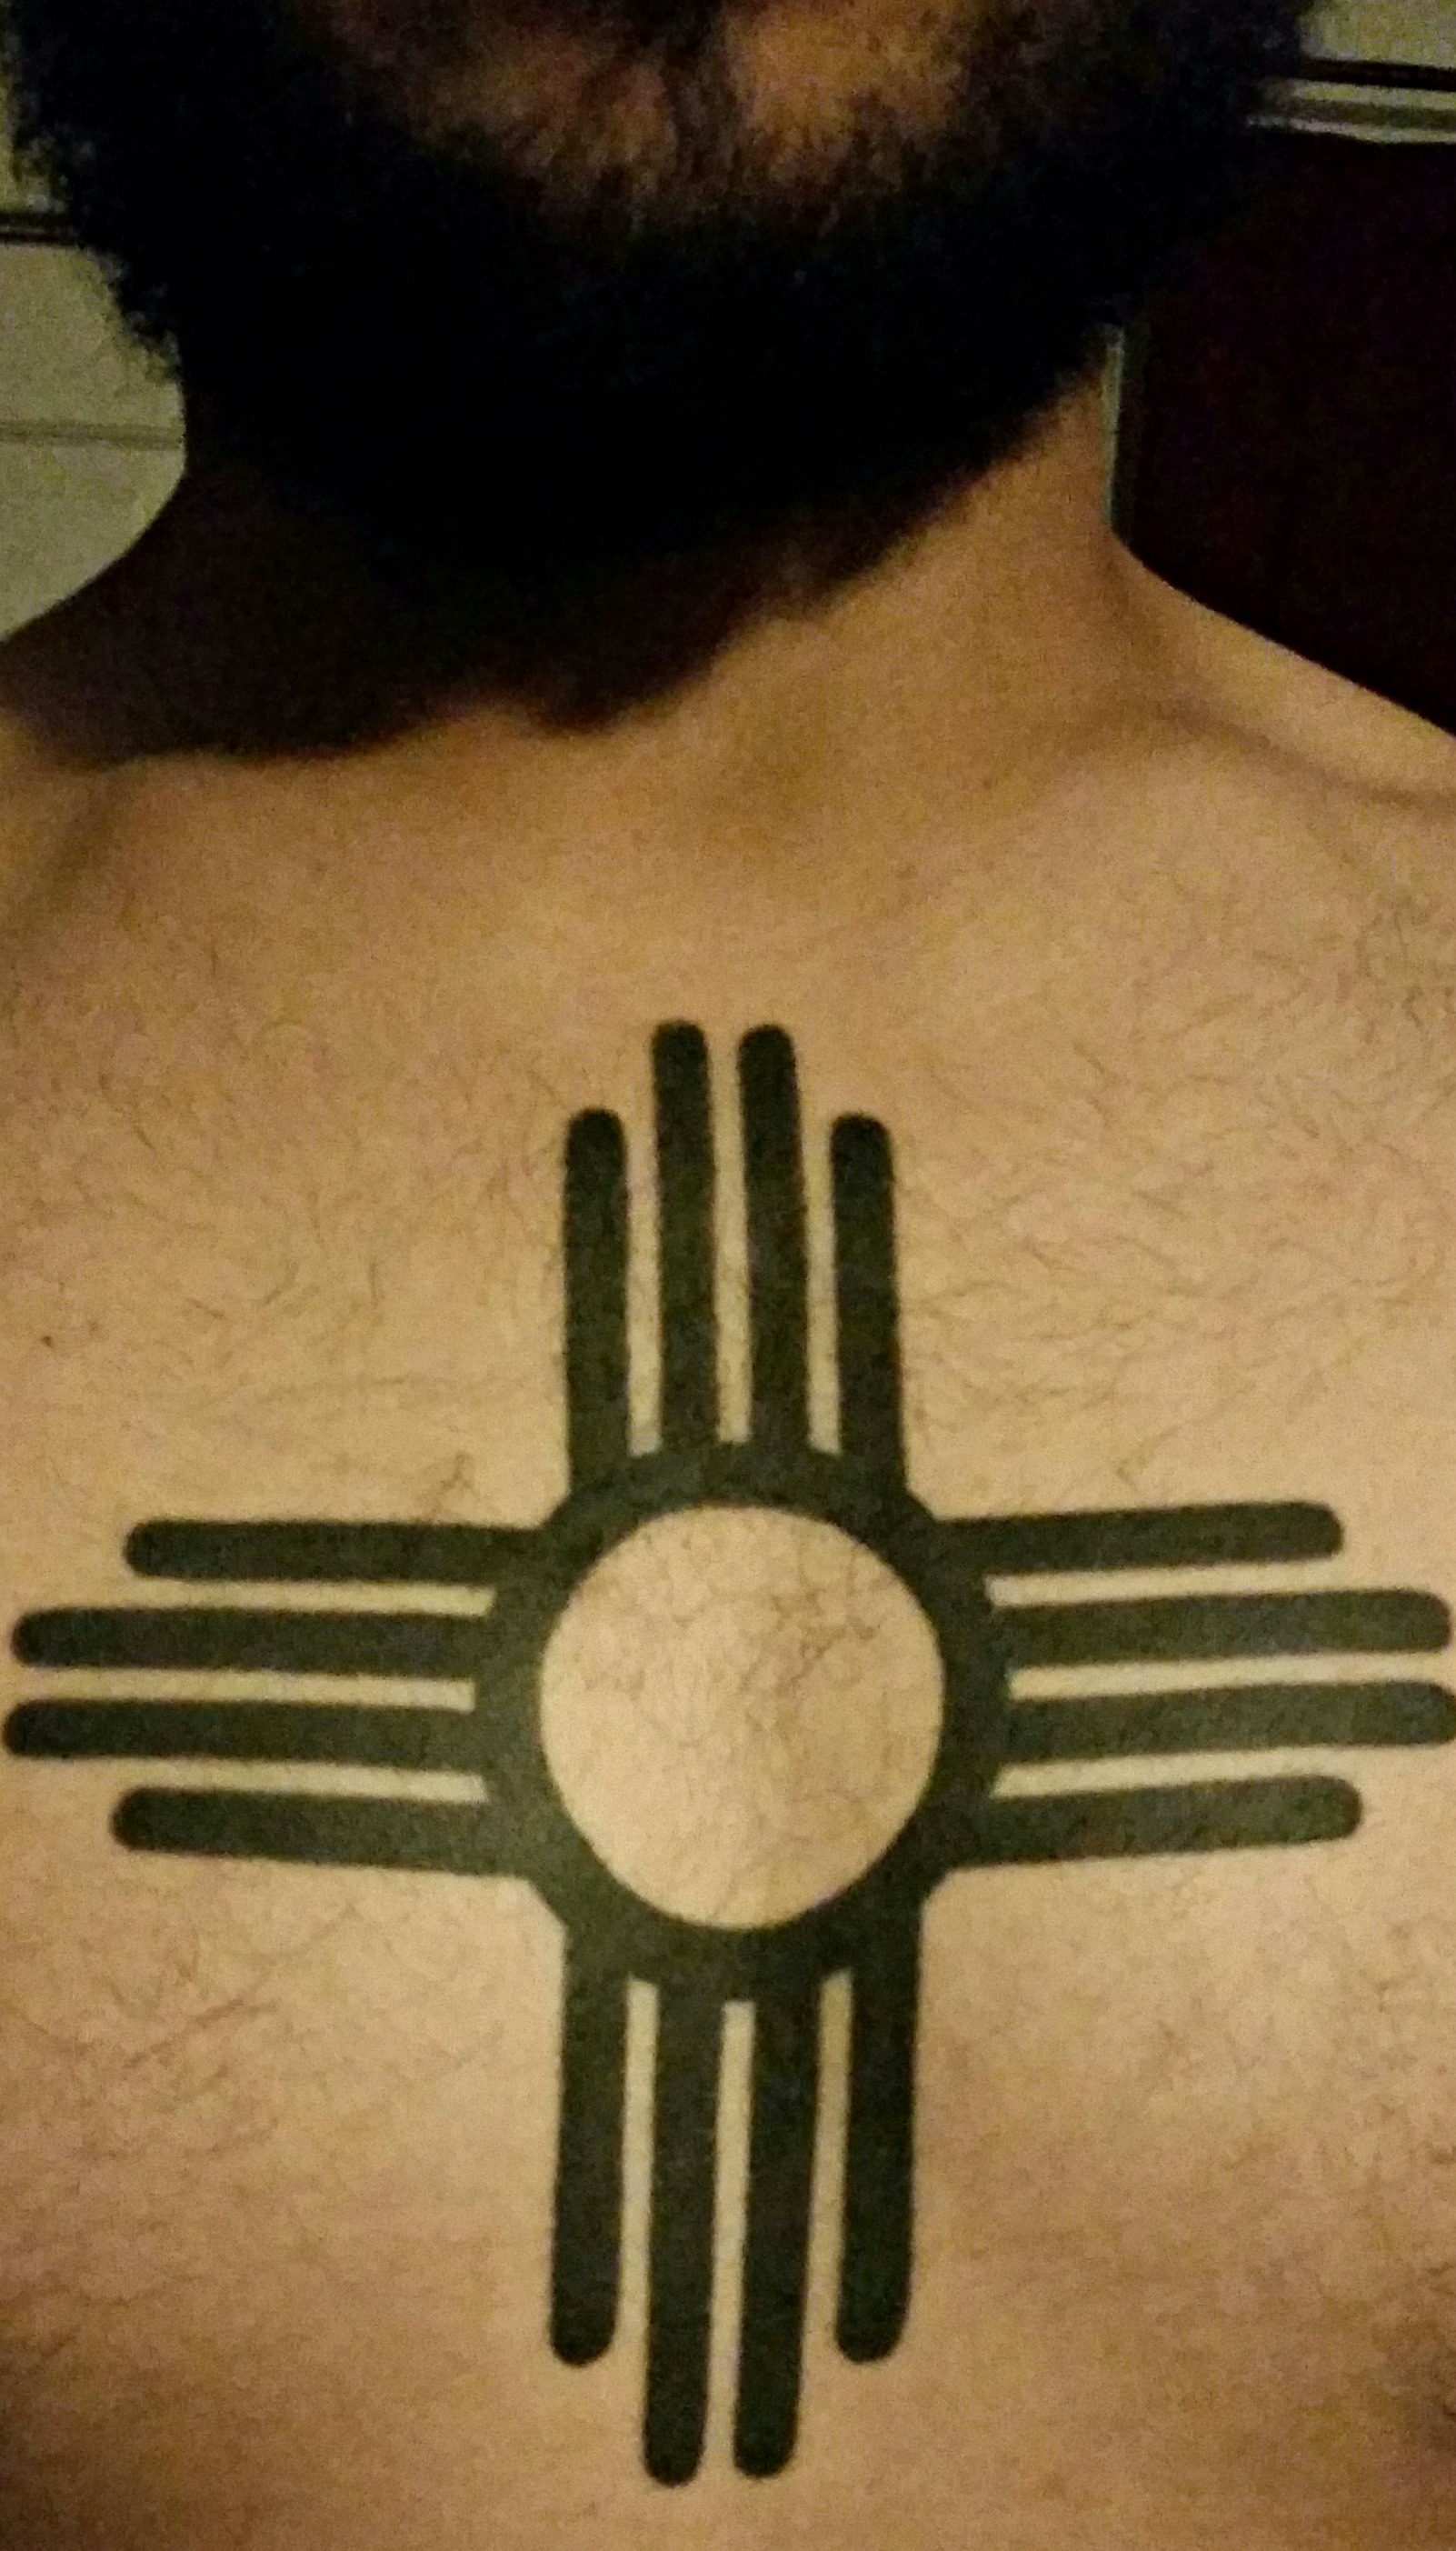 What do the colors of the zia symbol represent new mexico news port owen schwav got the zia symbol tattooed on his chest after moving to albuquerque photo biocorpaavc Choice Image